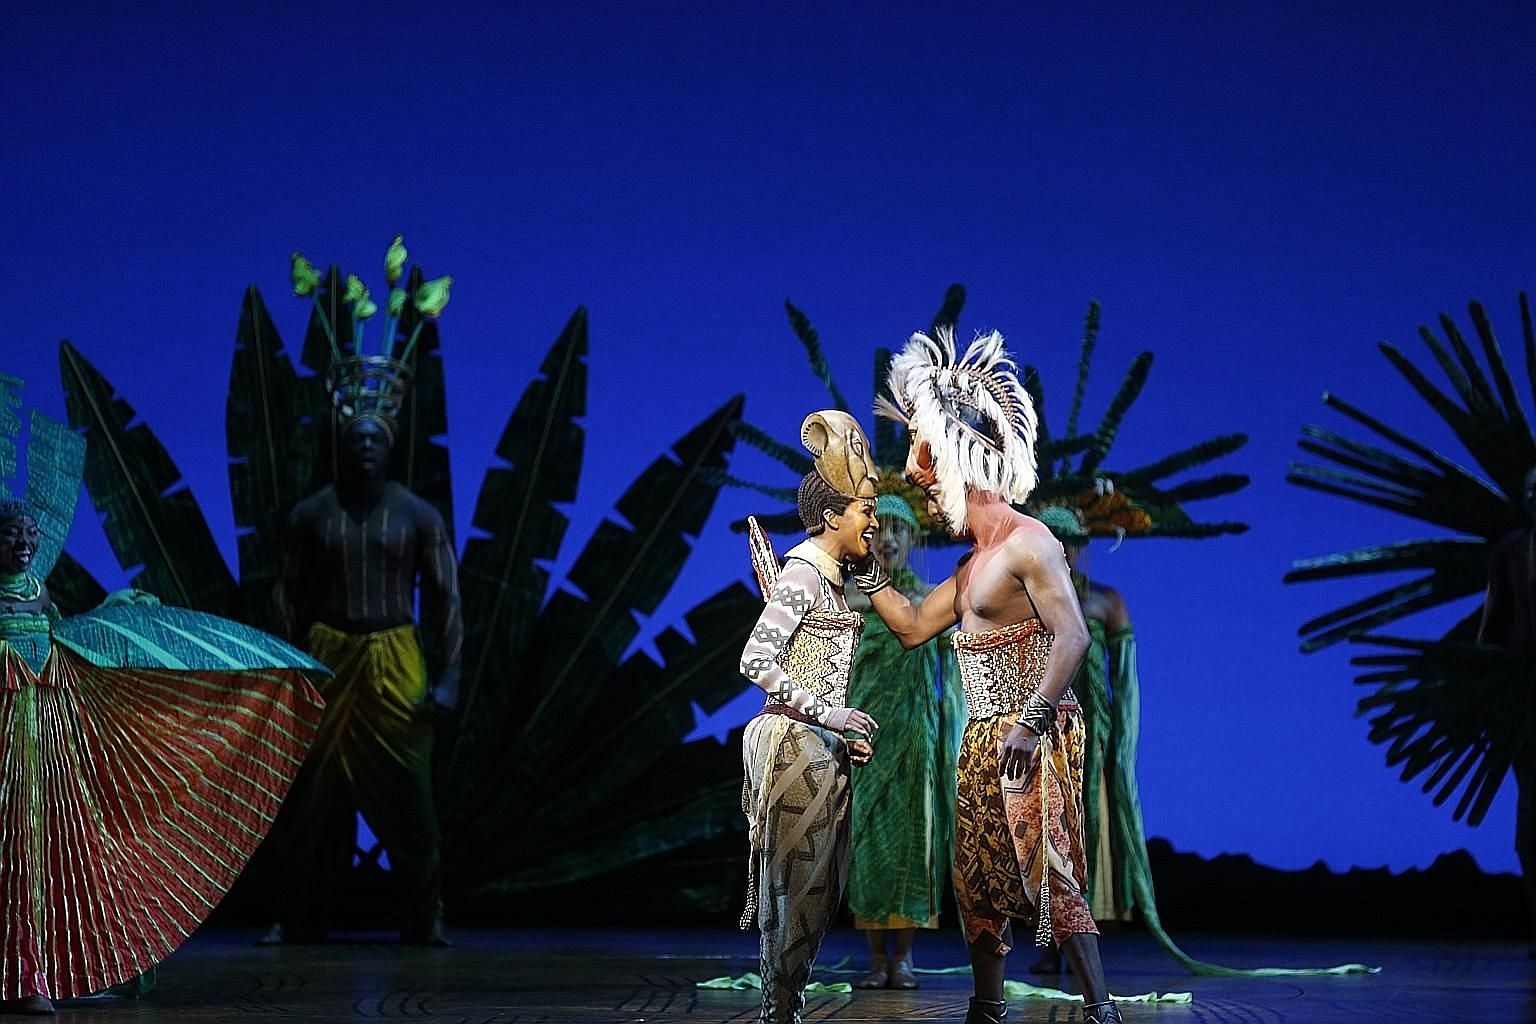 The Lion King is a glorious spectacle, a celebration of life and the spirit of Africa.